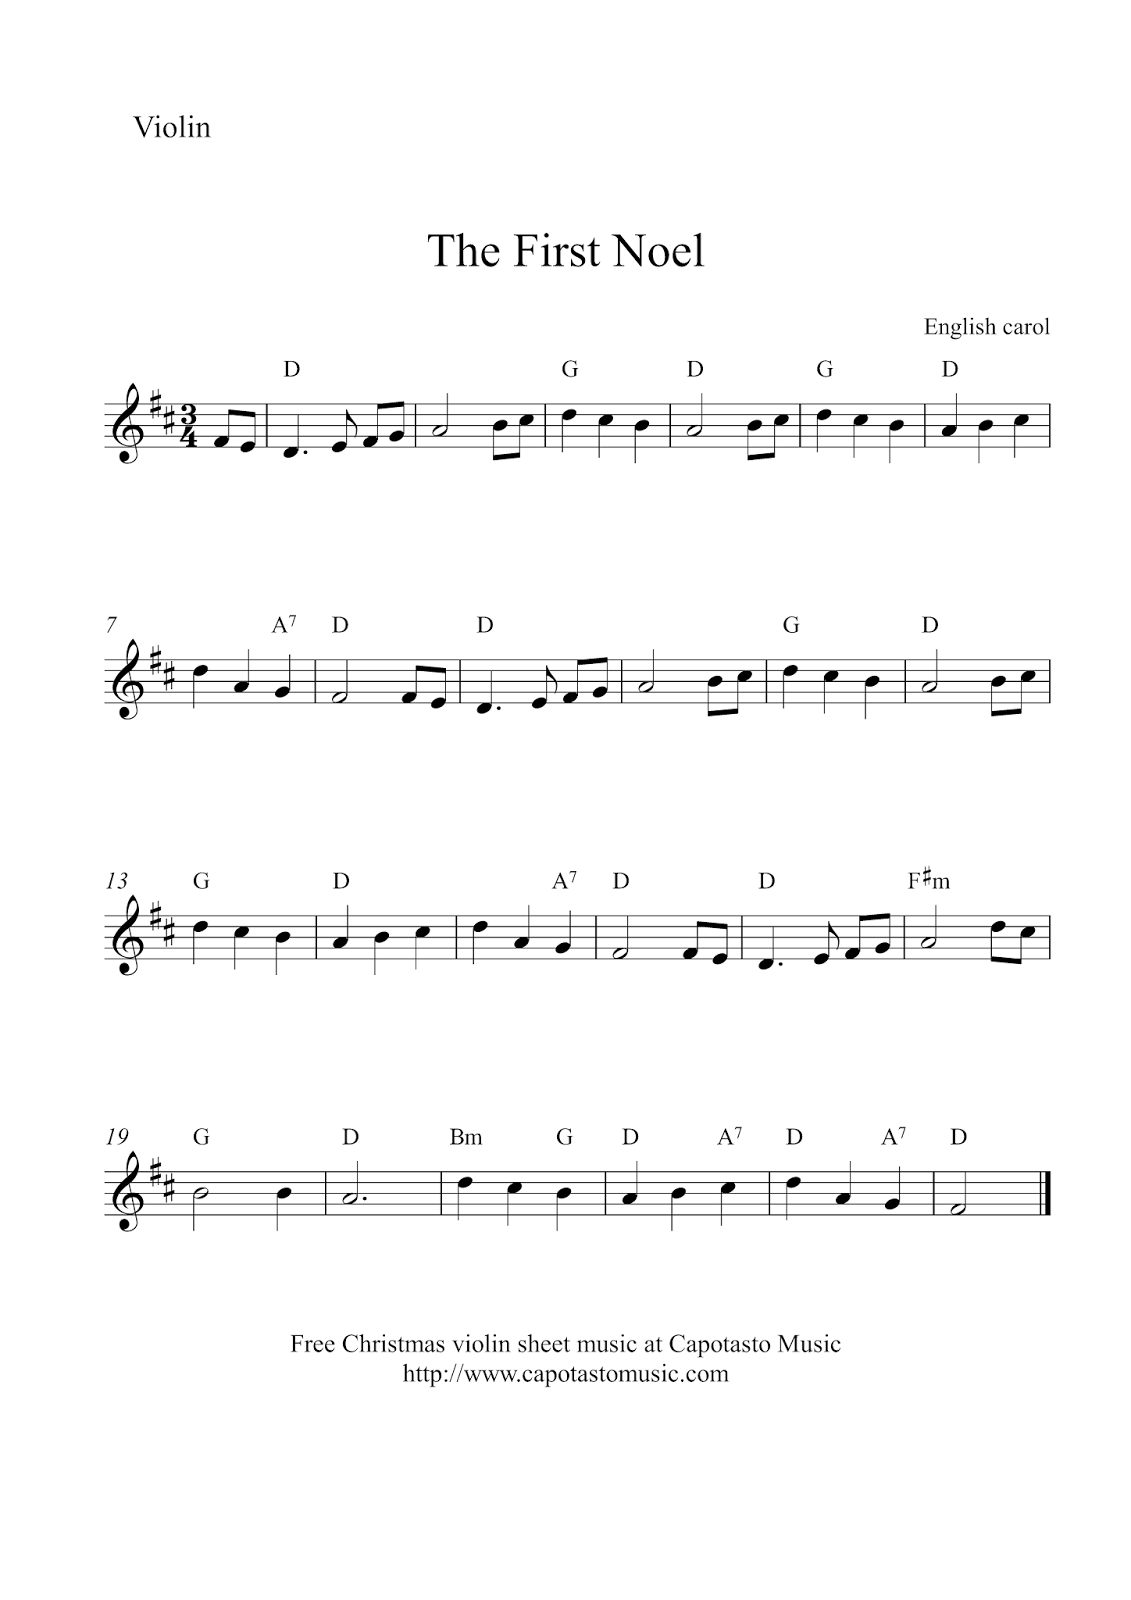 """Violin Christmas sheet music~ """"The First Noel"""" in the key of B minor"""